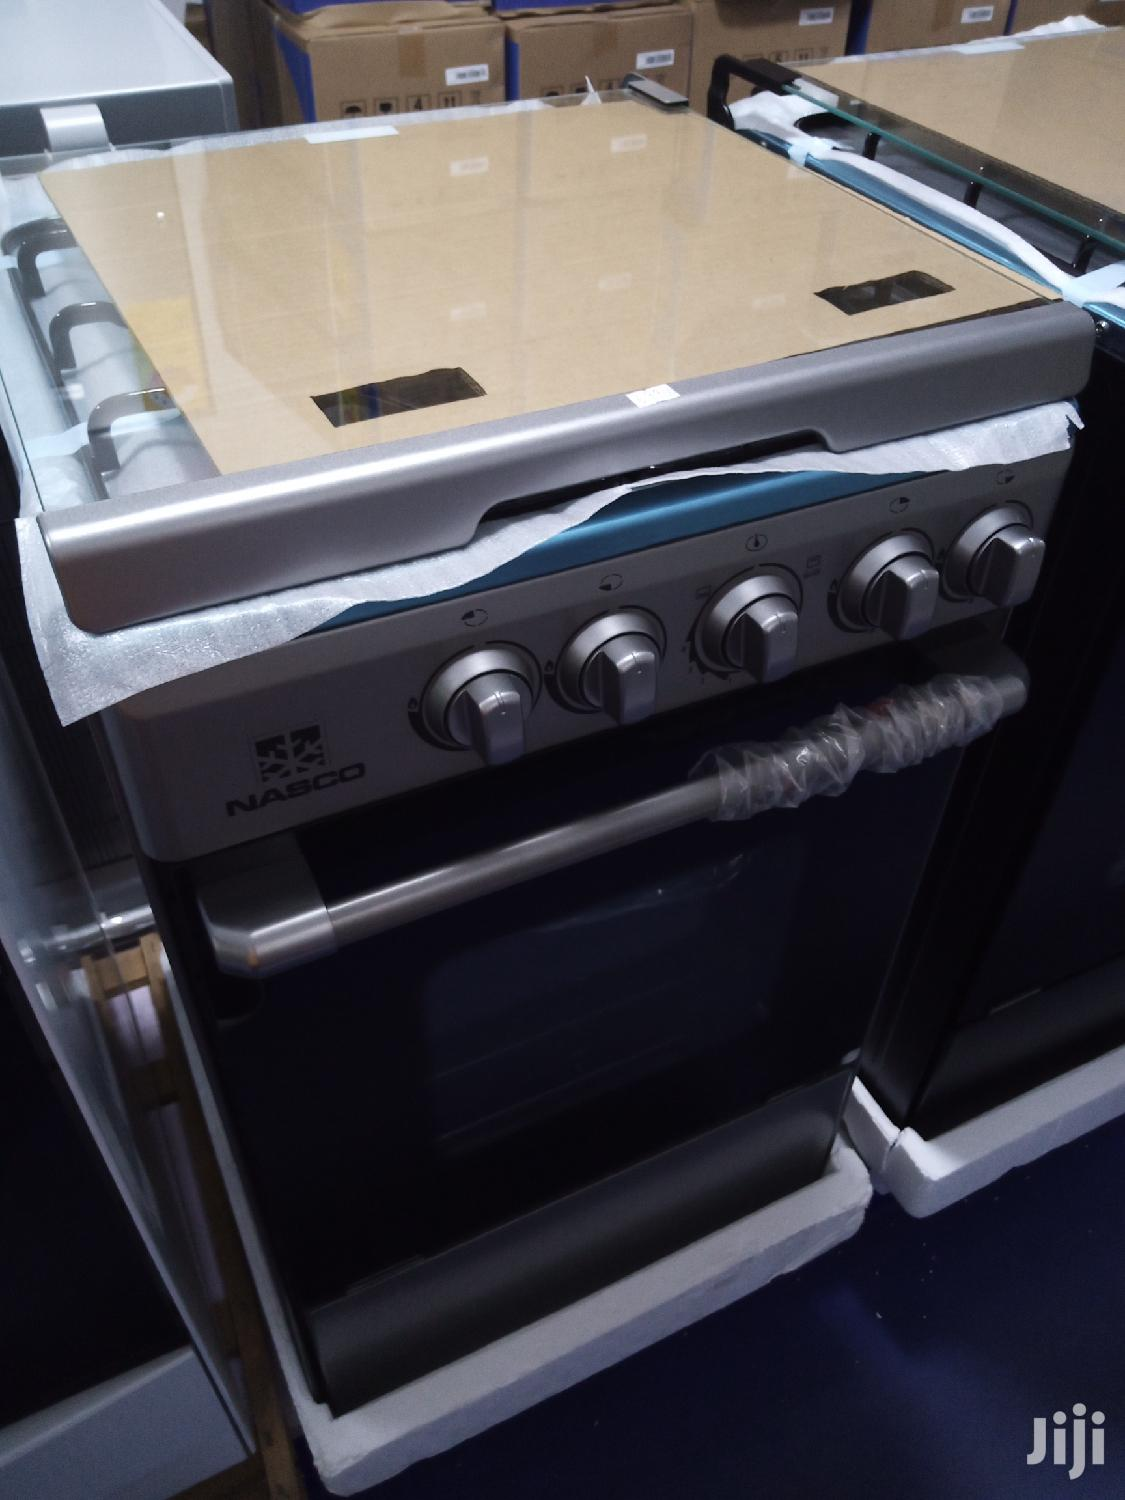 Nasco 4 Burner Gas Cooker With Oven and Grill